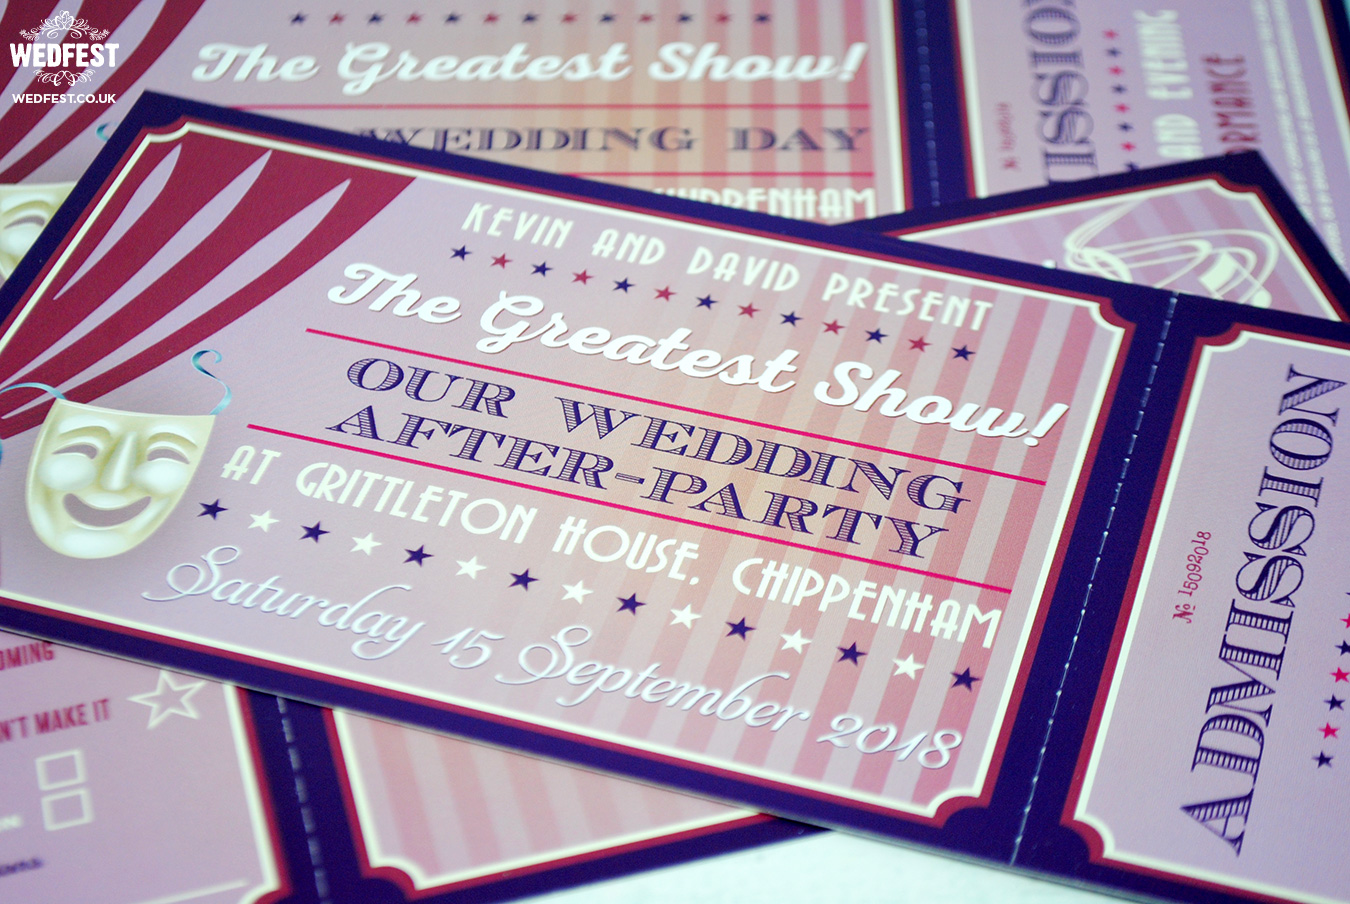 musical theatre ticket theme wedding invitation